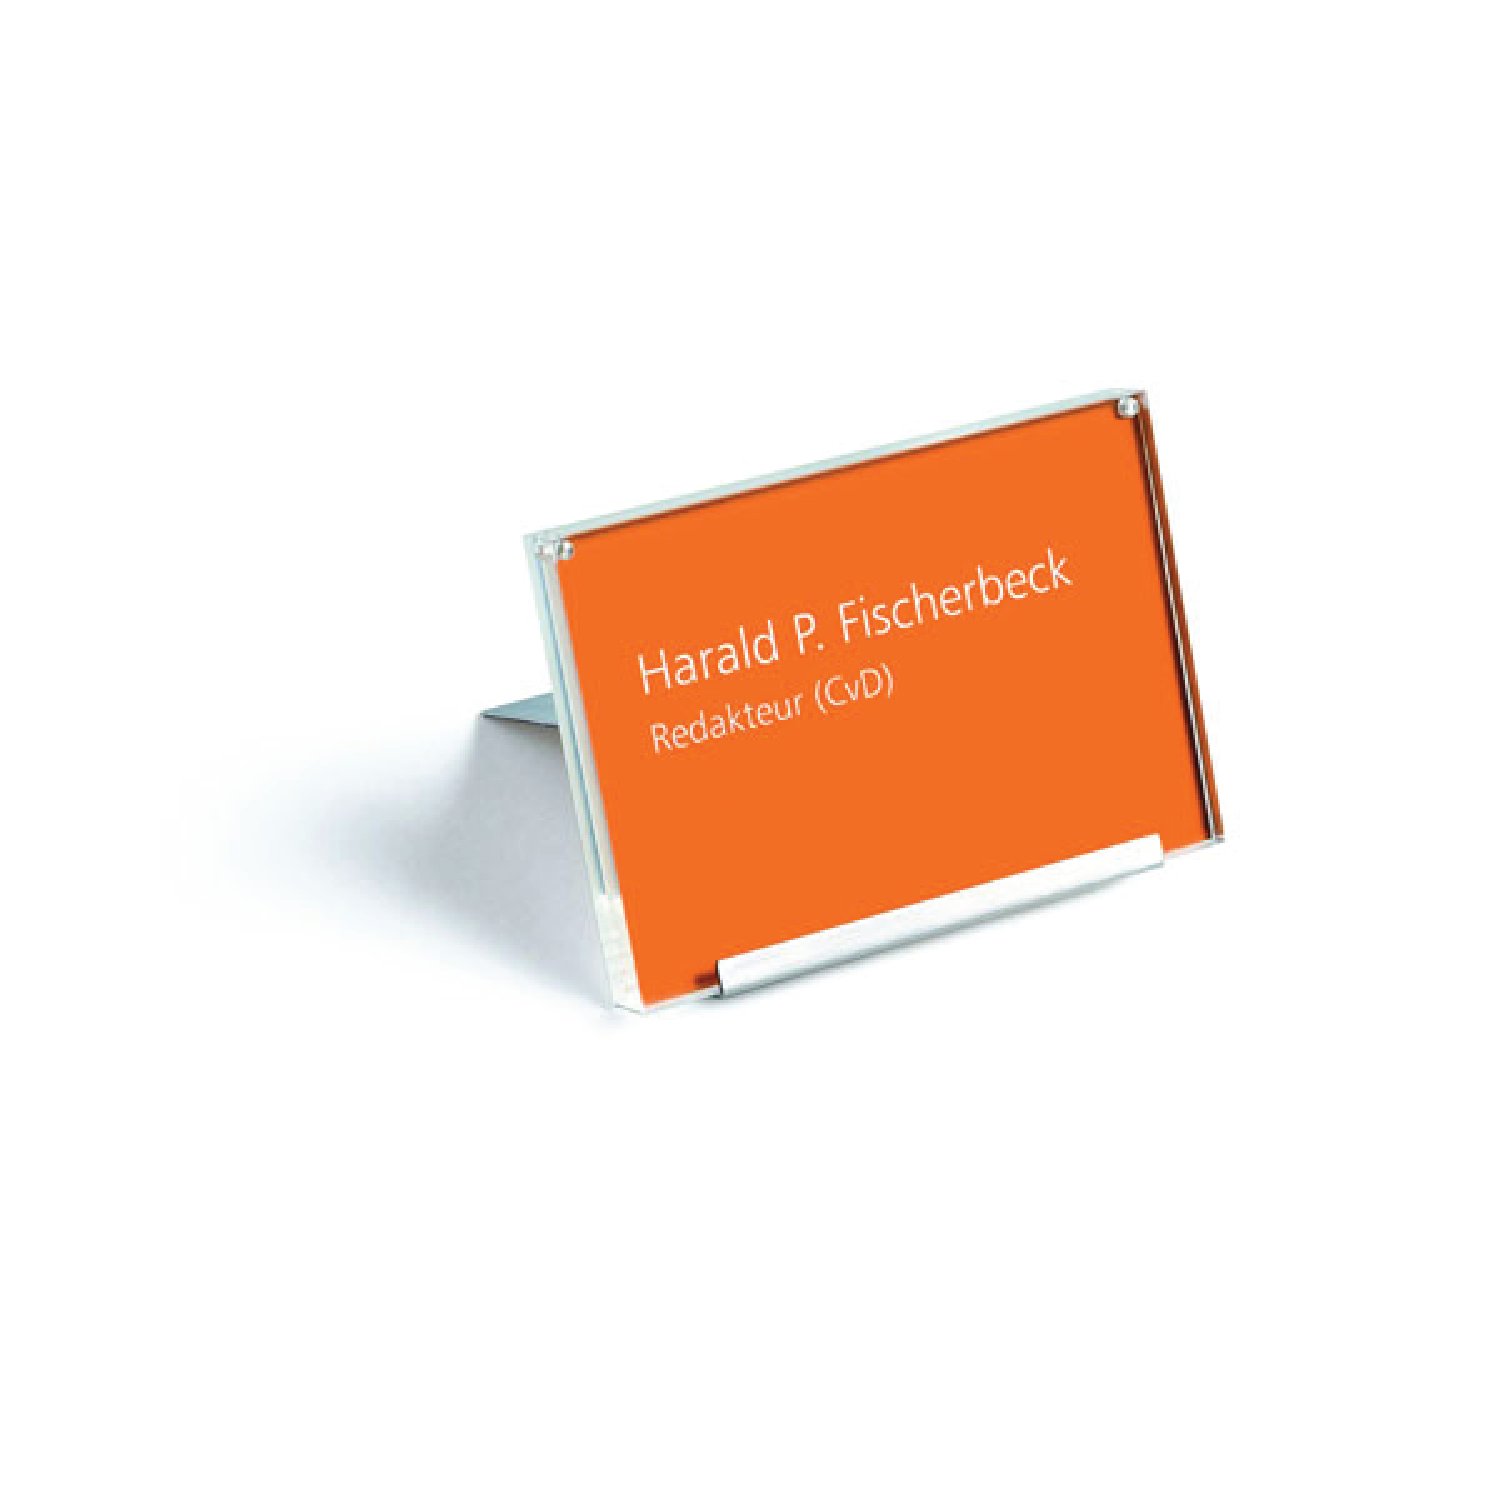 Wolk image desk stand-01.png